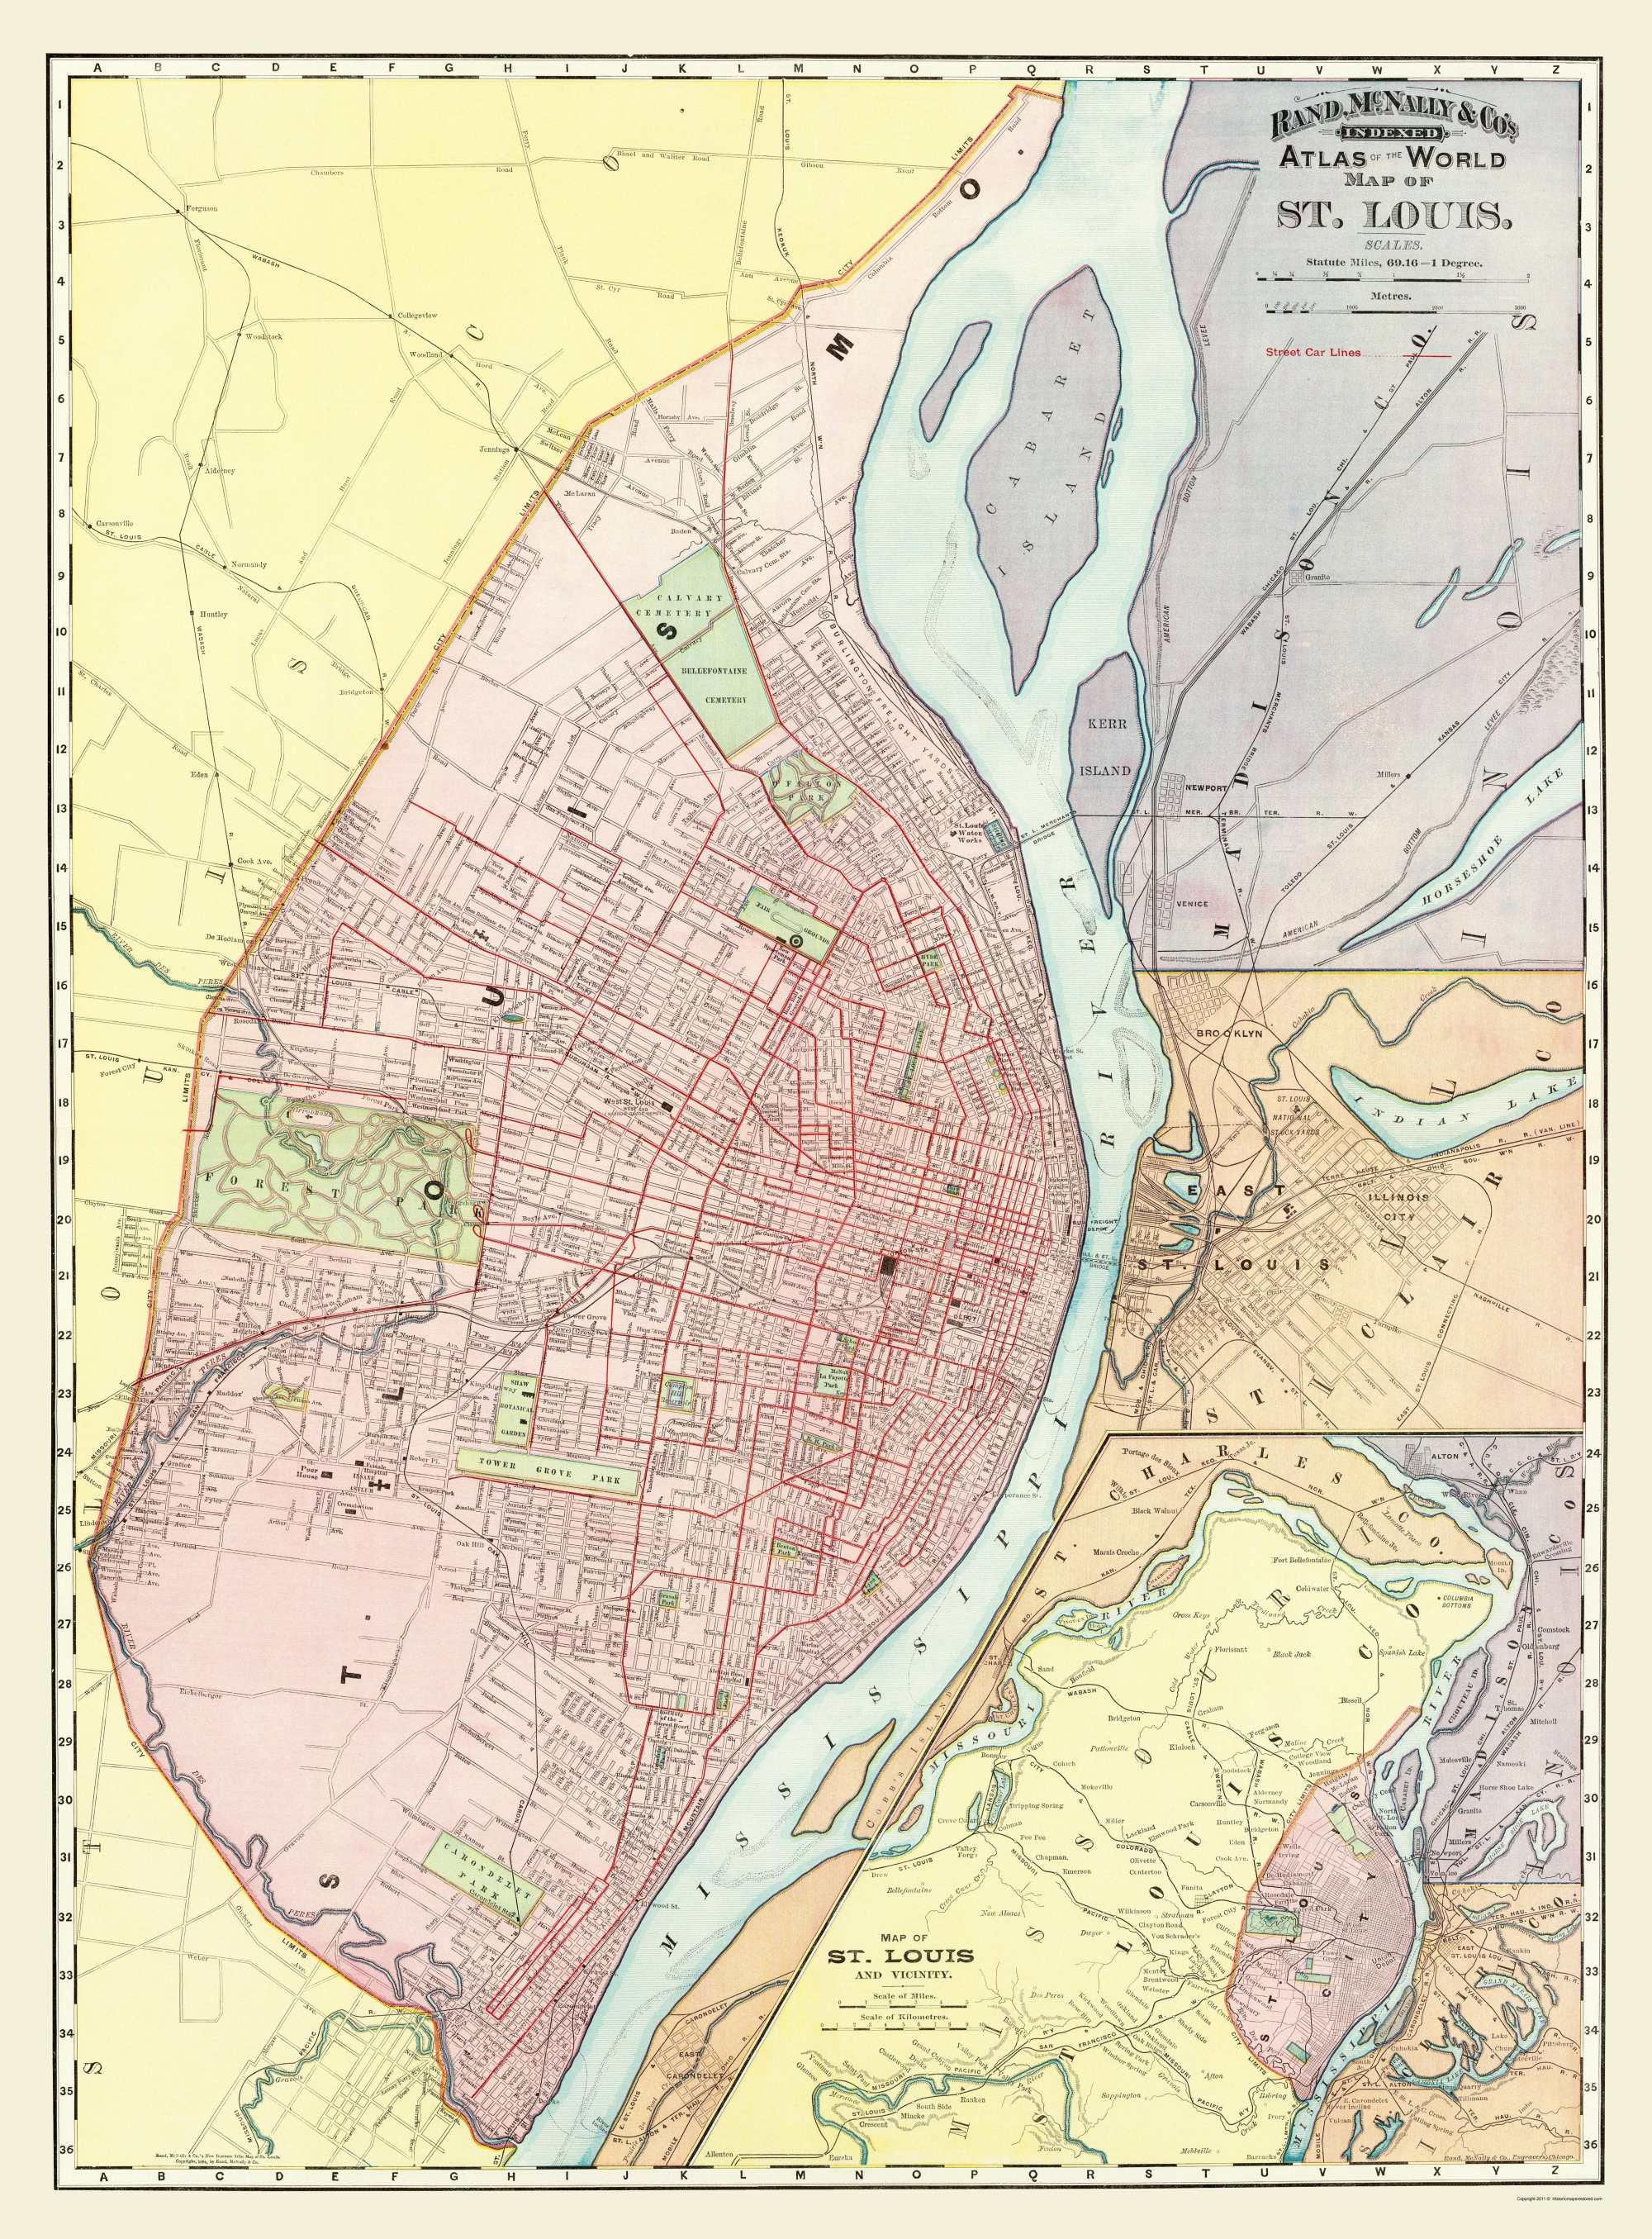 Old Map - St. Louis Missouri, Illinois with Illinois 1907